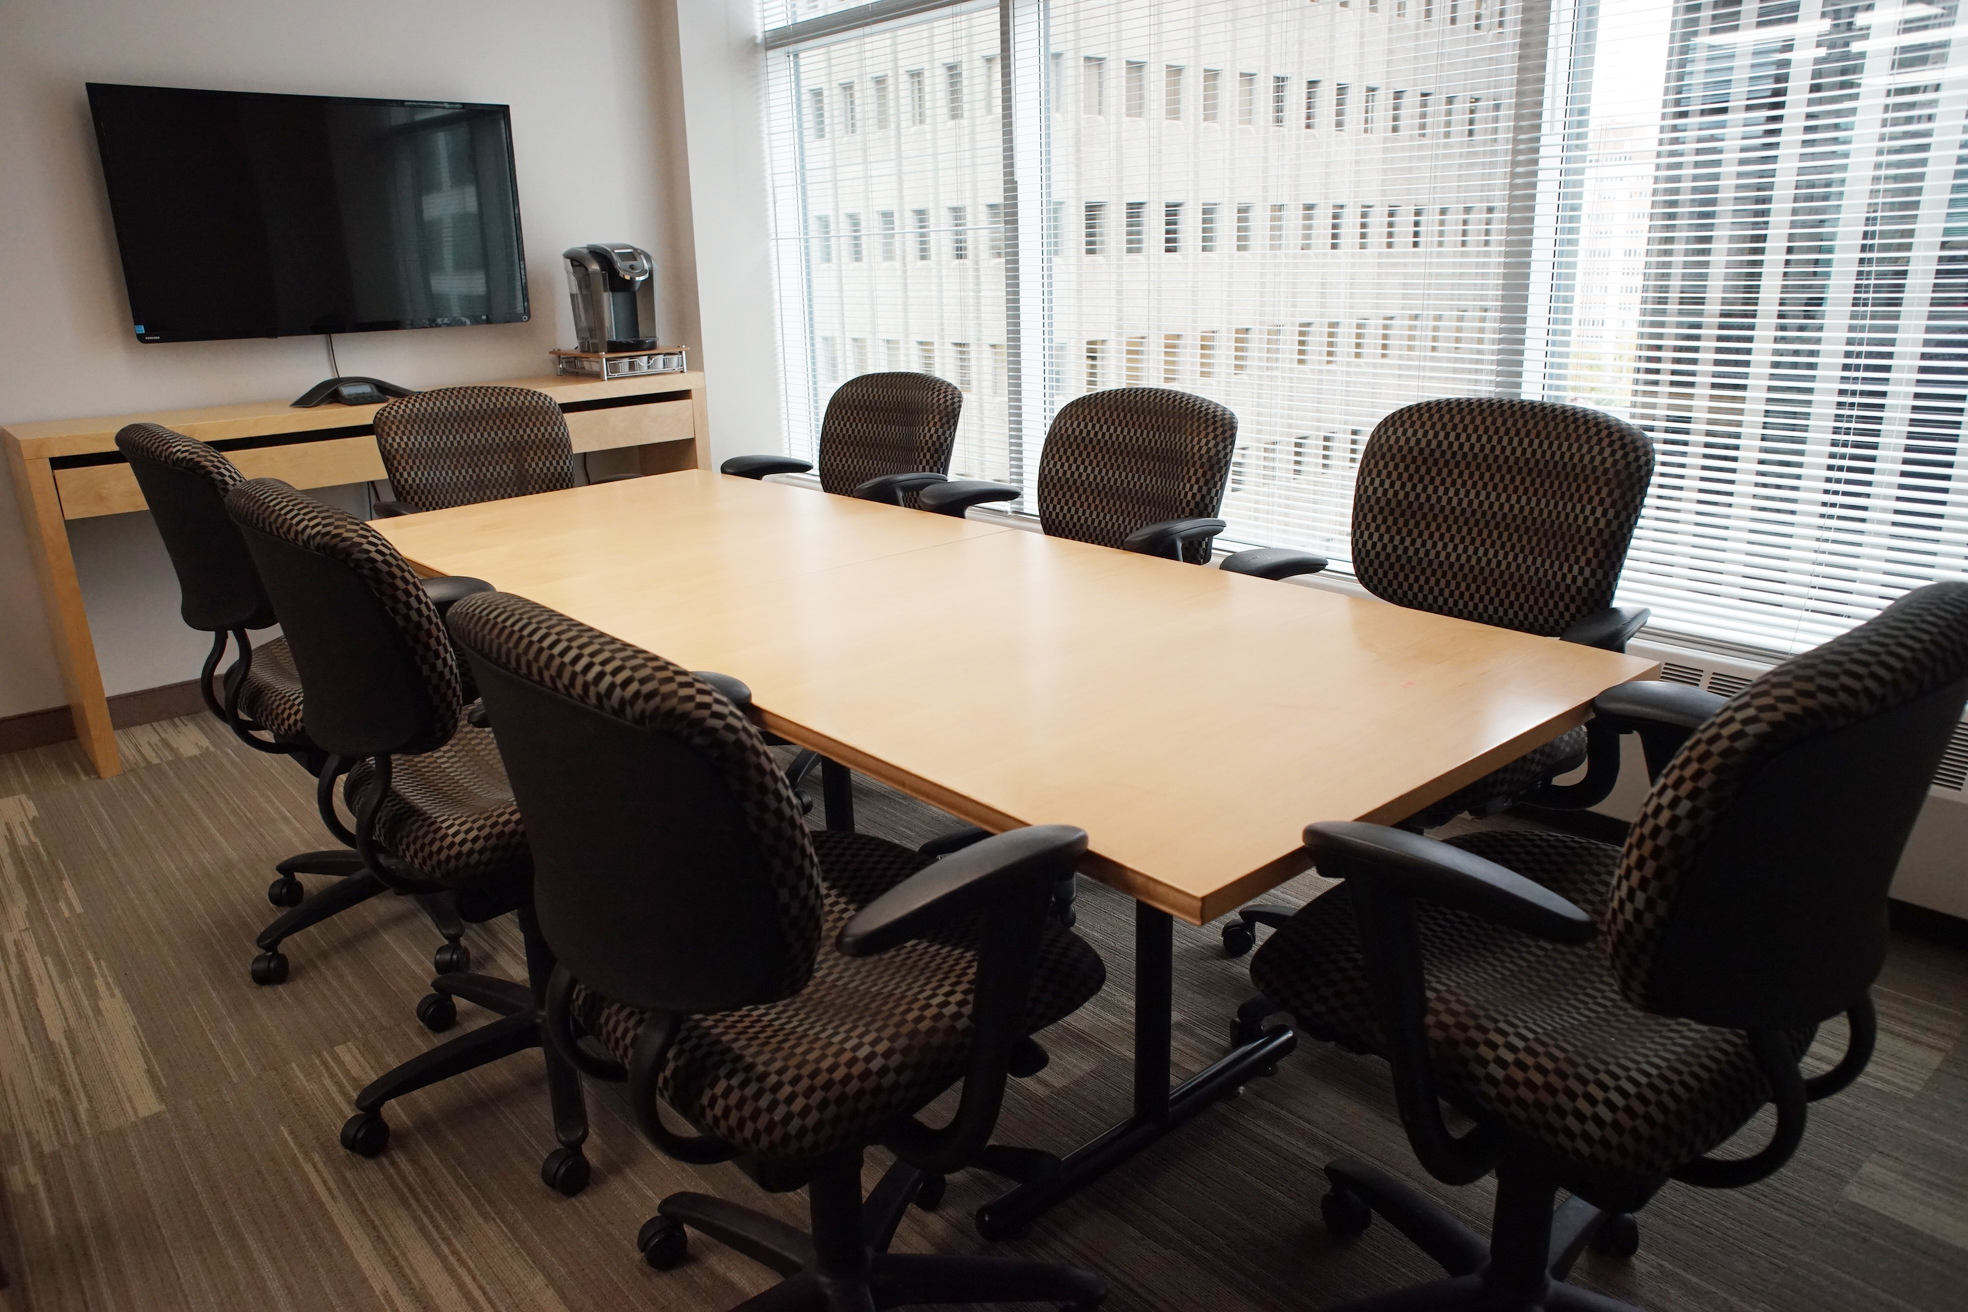 The Value of Using Meeting and Conference Rooms in Today's World